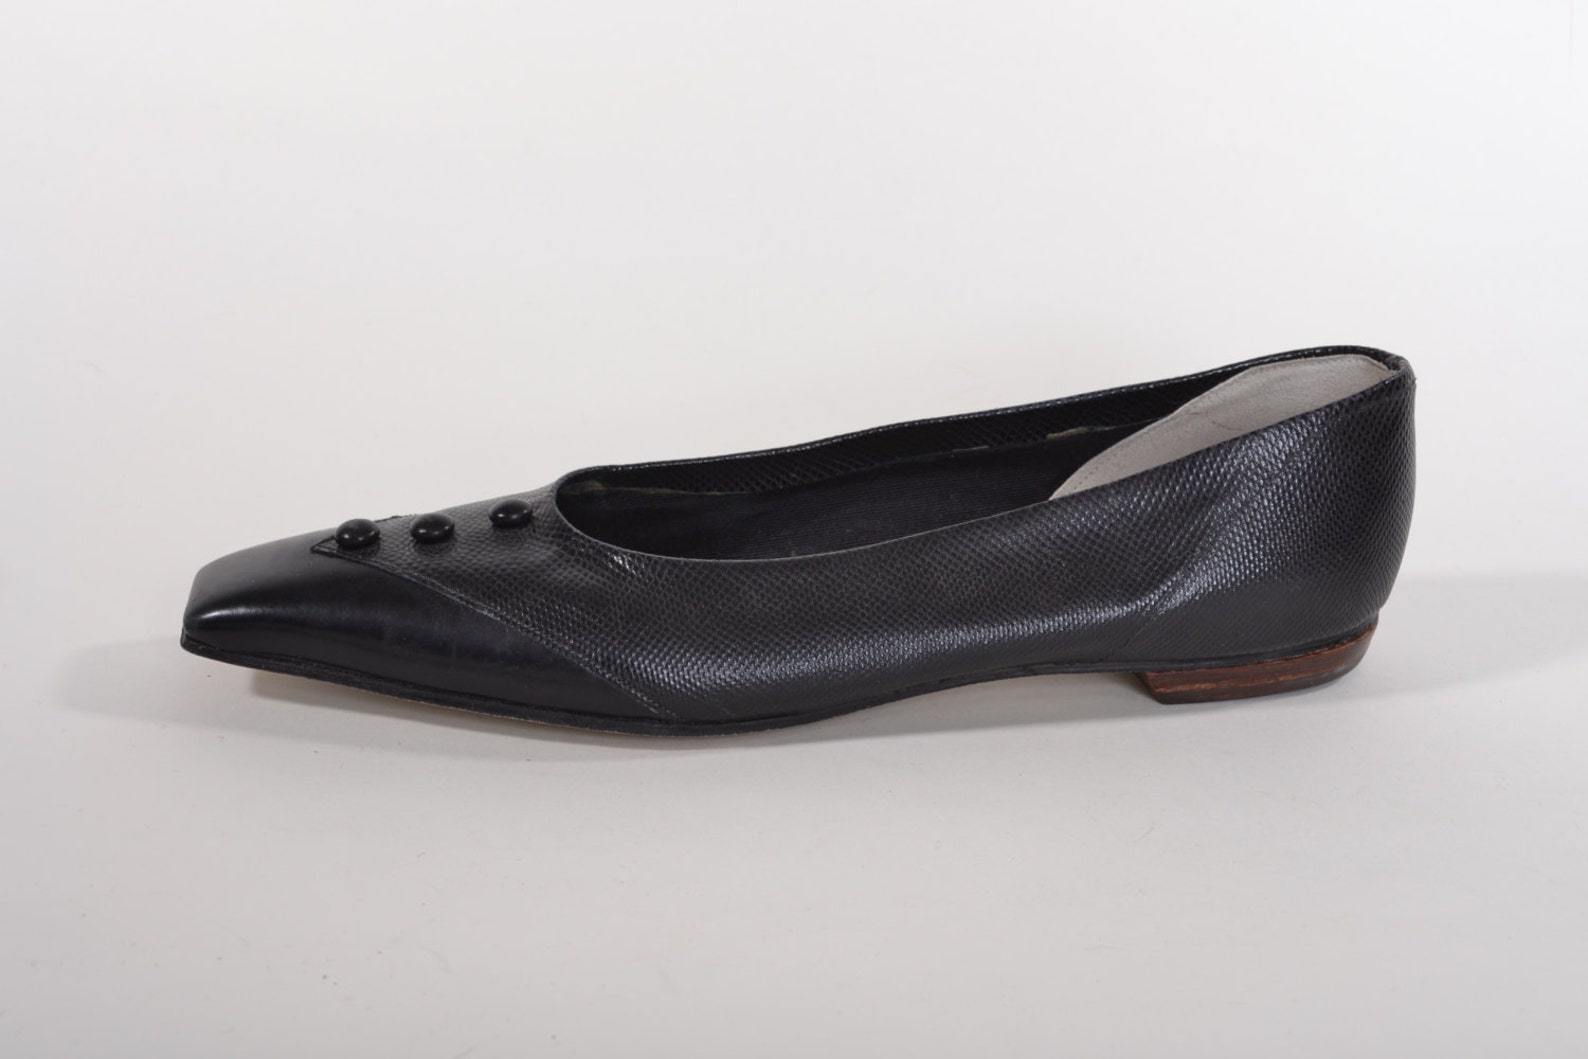 vintage 1960s black flats shoes - pointed square toe ballet flats - size 7.5aa